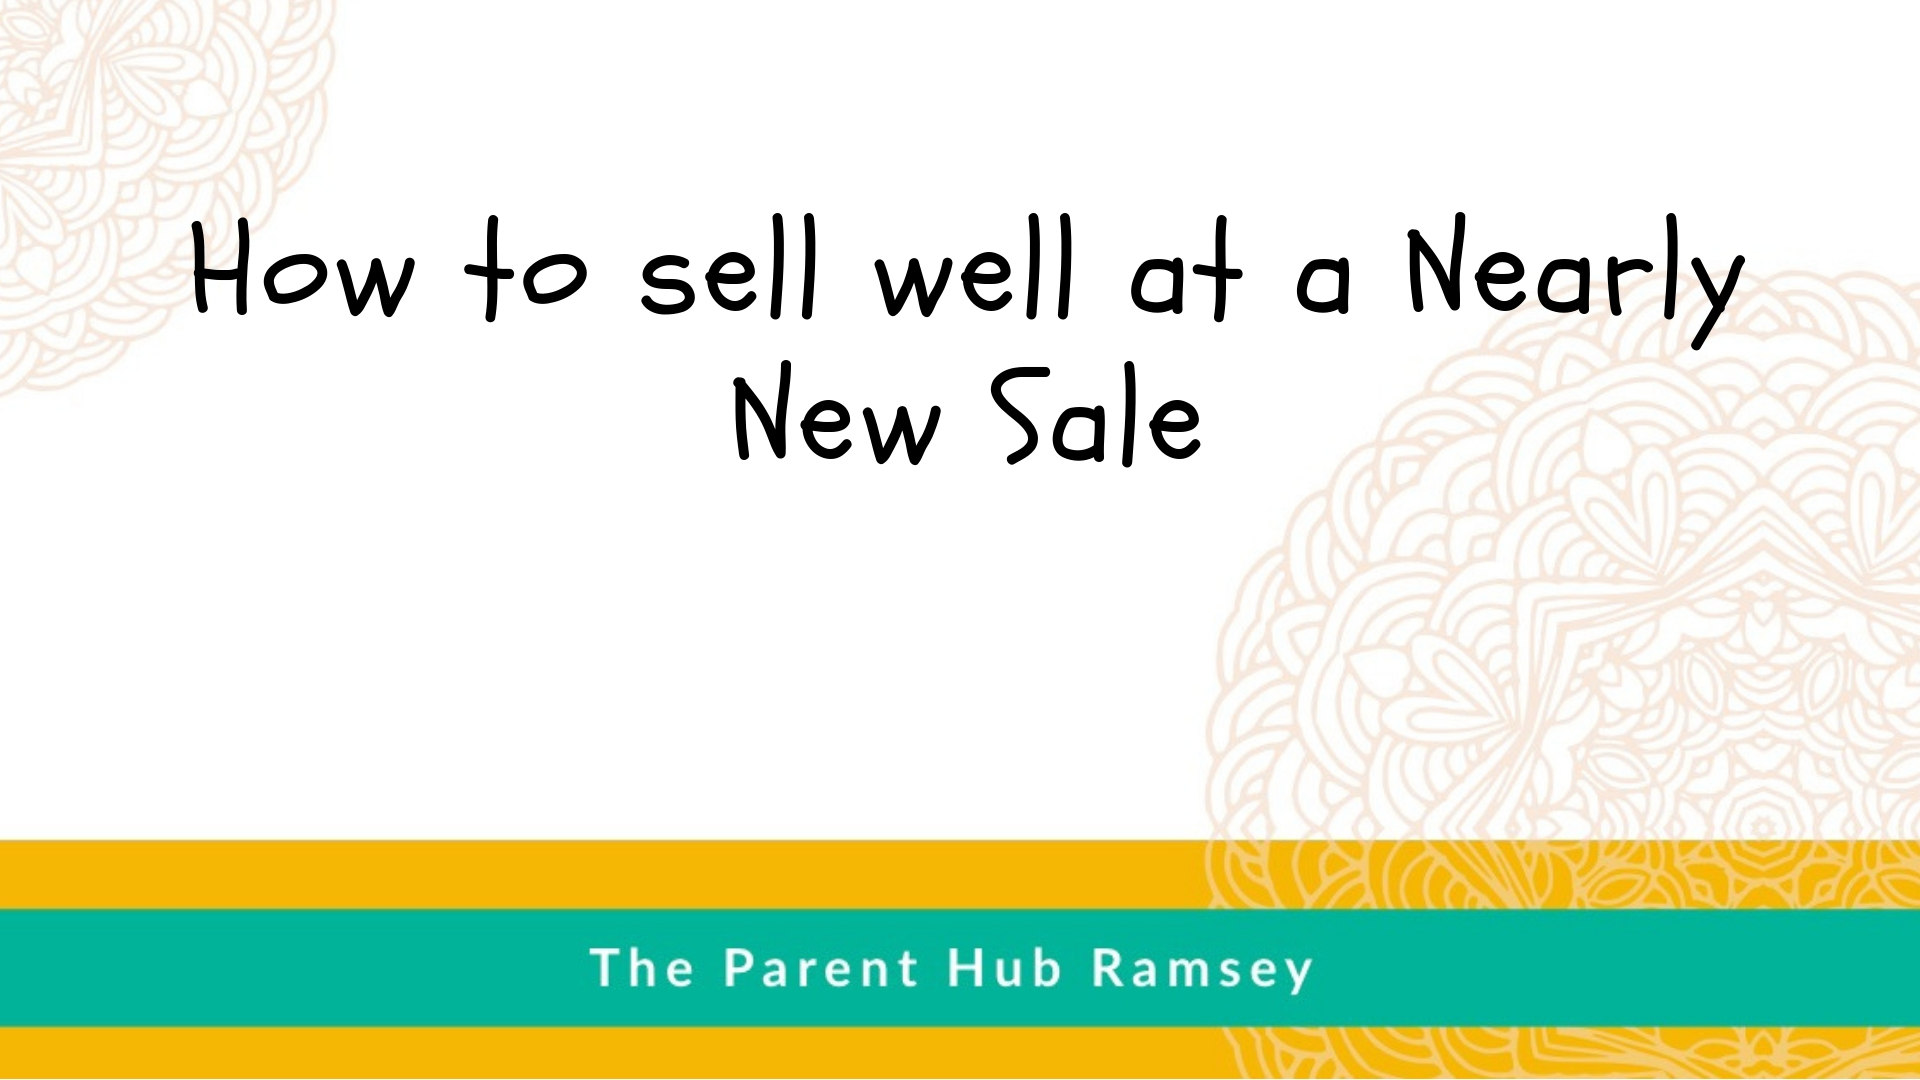 How to sell at a nearly new sale